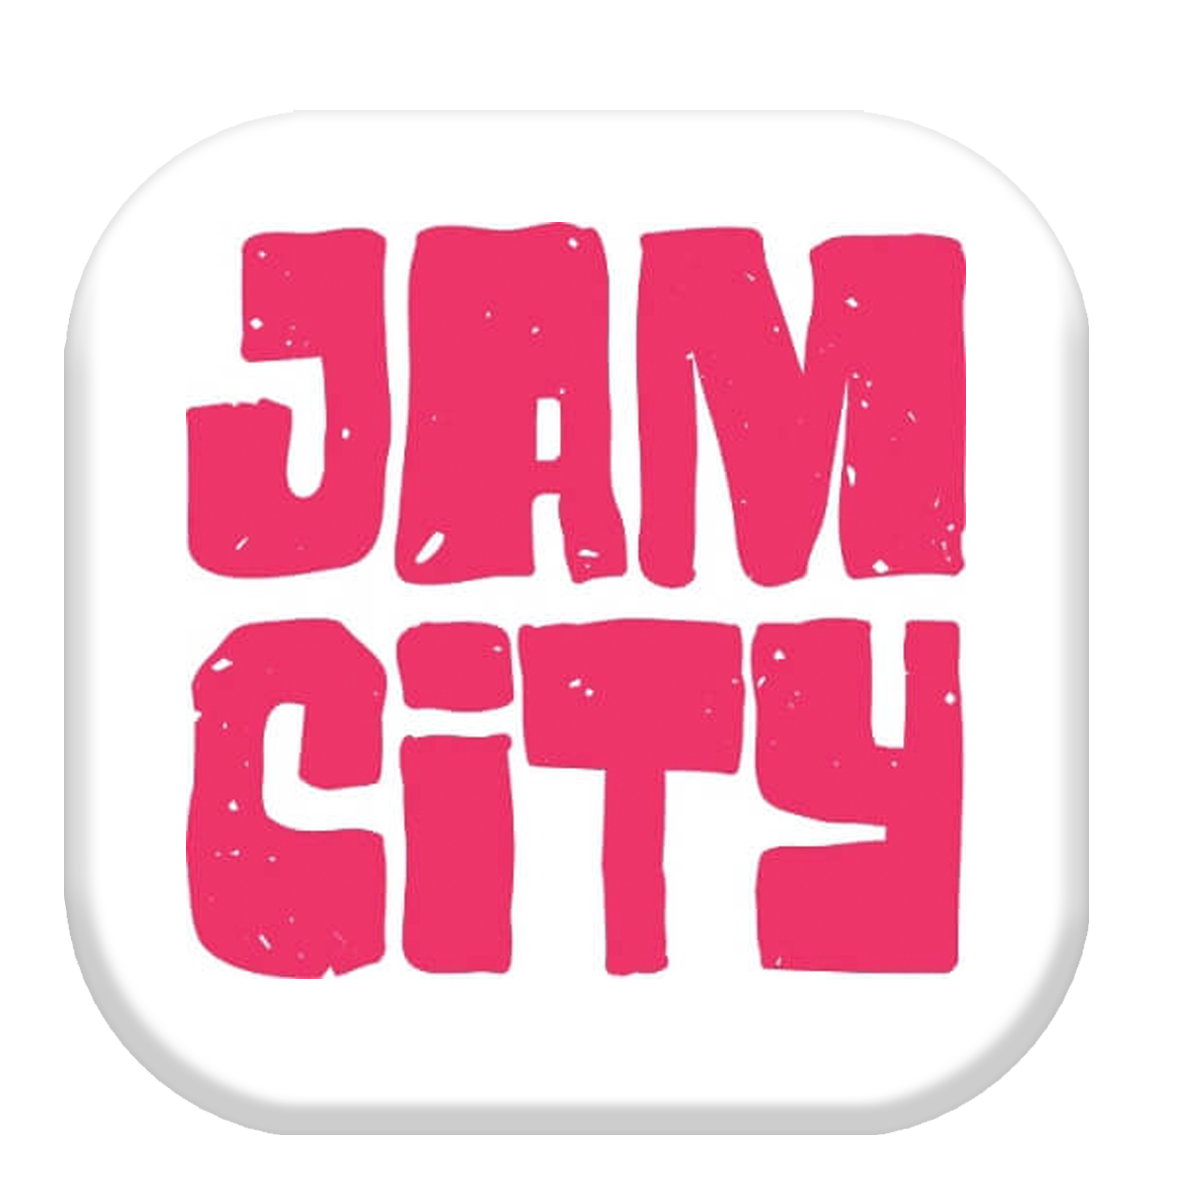 JAMCITY_CASE_STUDY_ICON_FINAL.png